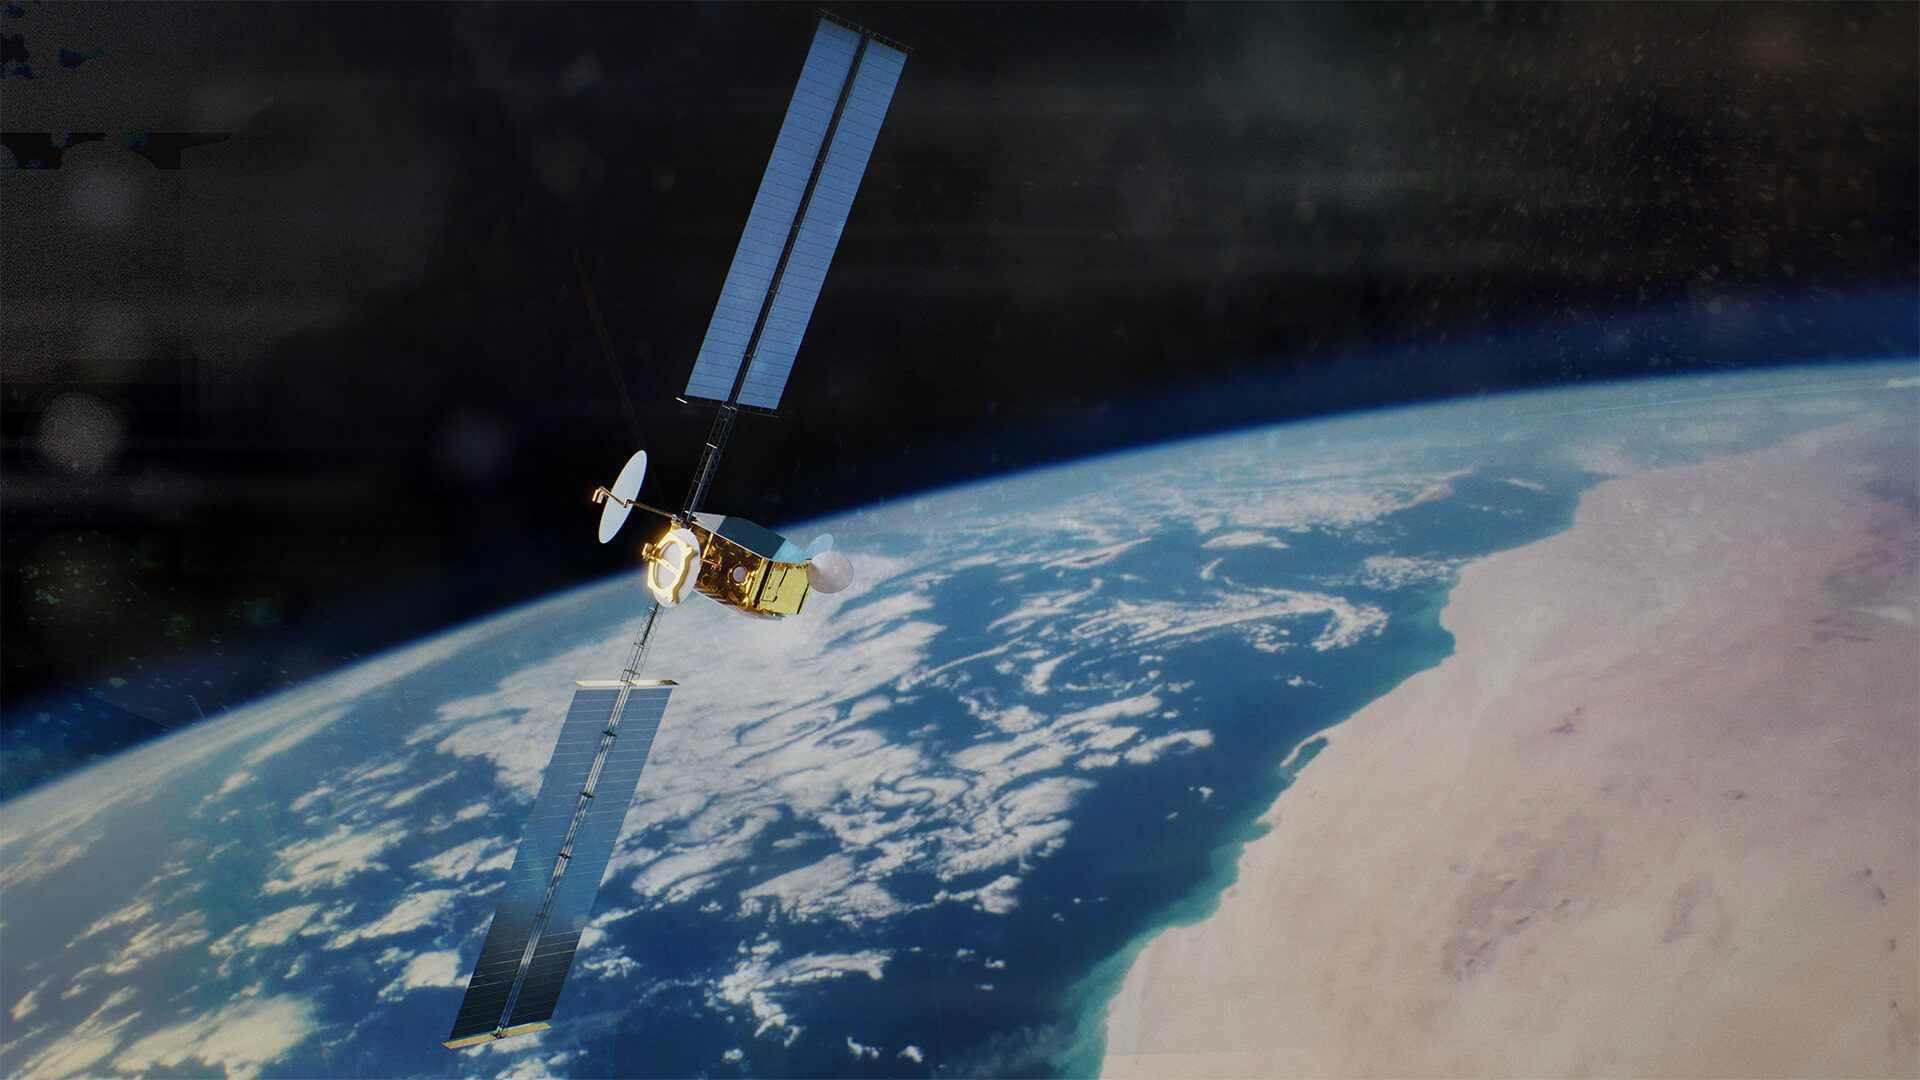 After court case is settled, the Inmarsat takeover is cleared and delisting takes place